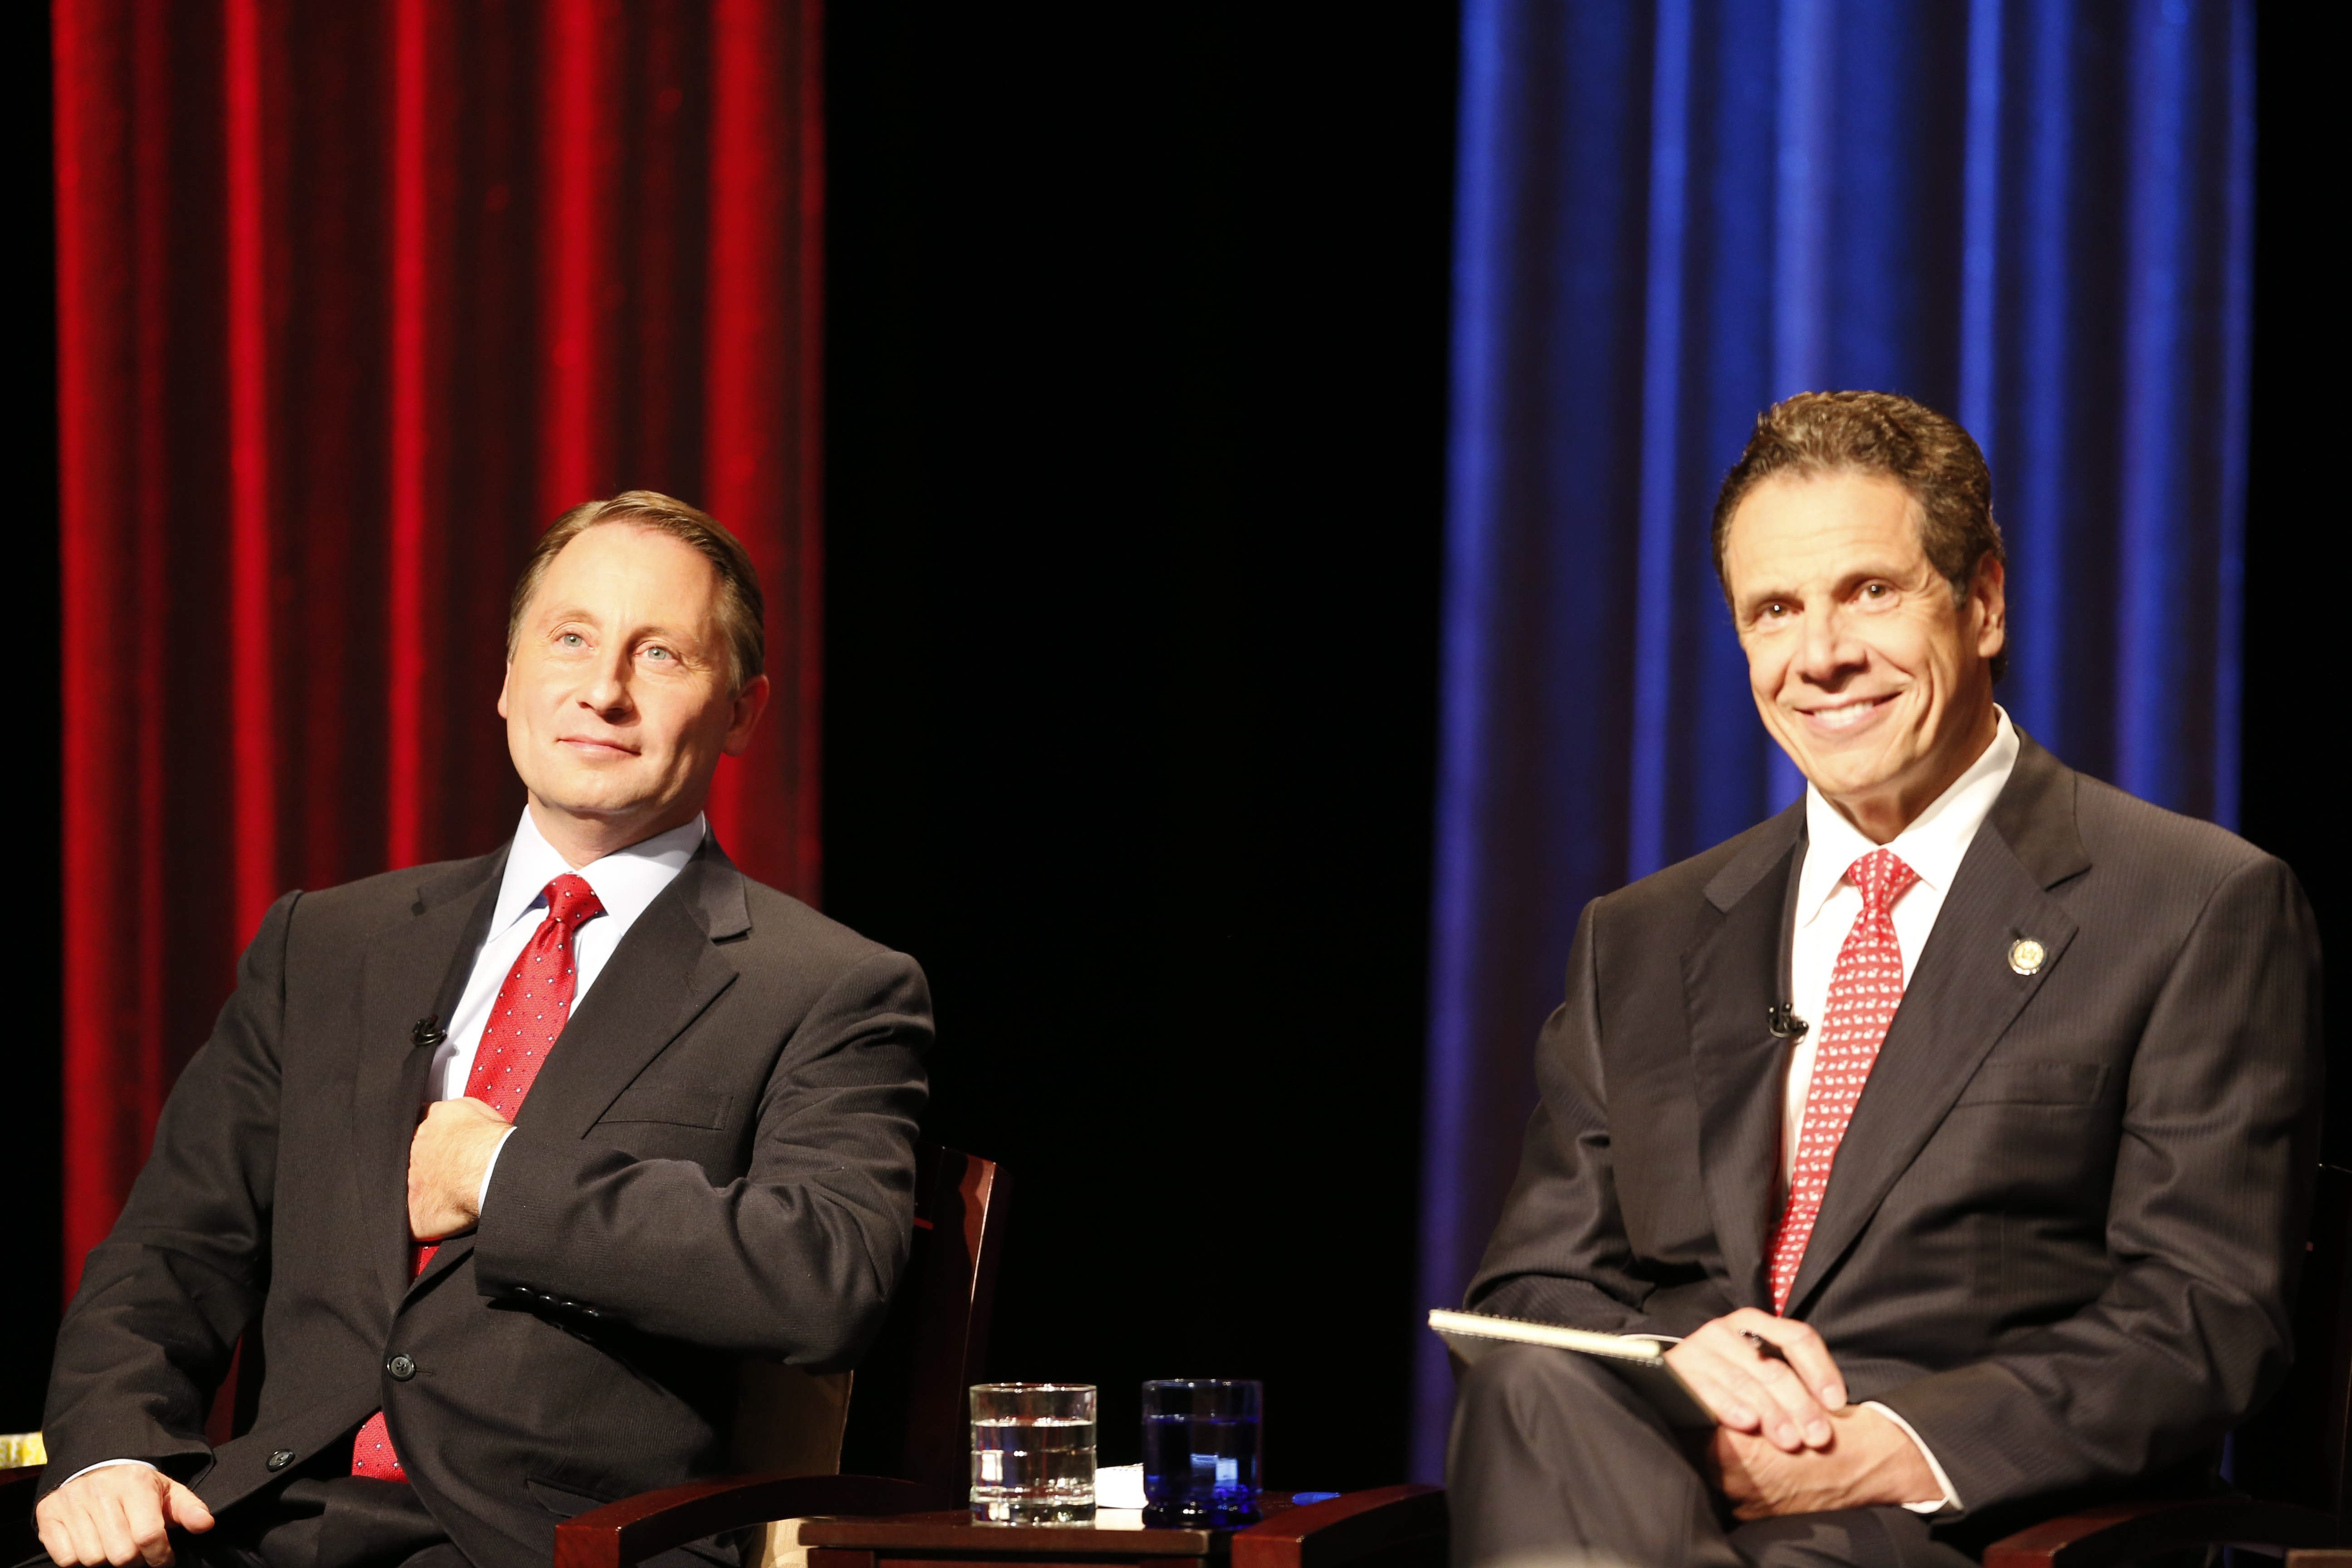 New York gubernatorial candidates Rob Astorino, left, and Gov. Andrew Cuomo participate in a debate sponsored by The Buffalo News and WNED-WBFO at WNED Studios in Buffalo, N.Y., Wednesday, Oct. 22, 2014.  (Derek Gee/Buffalo News)